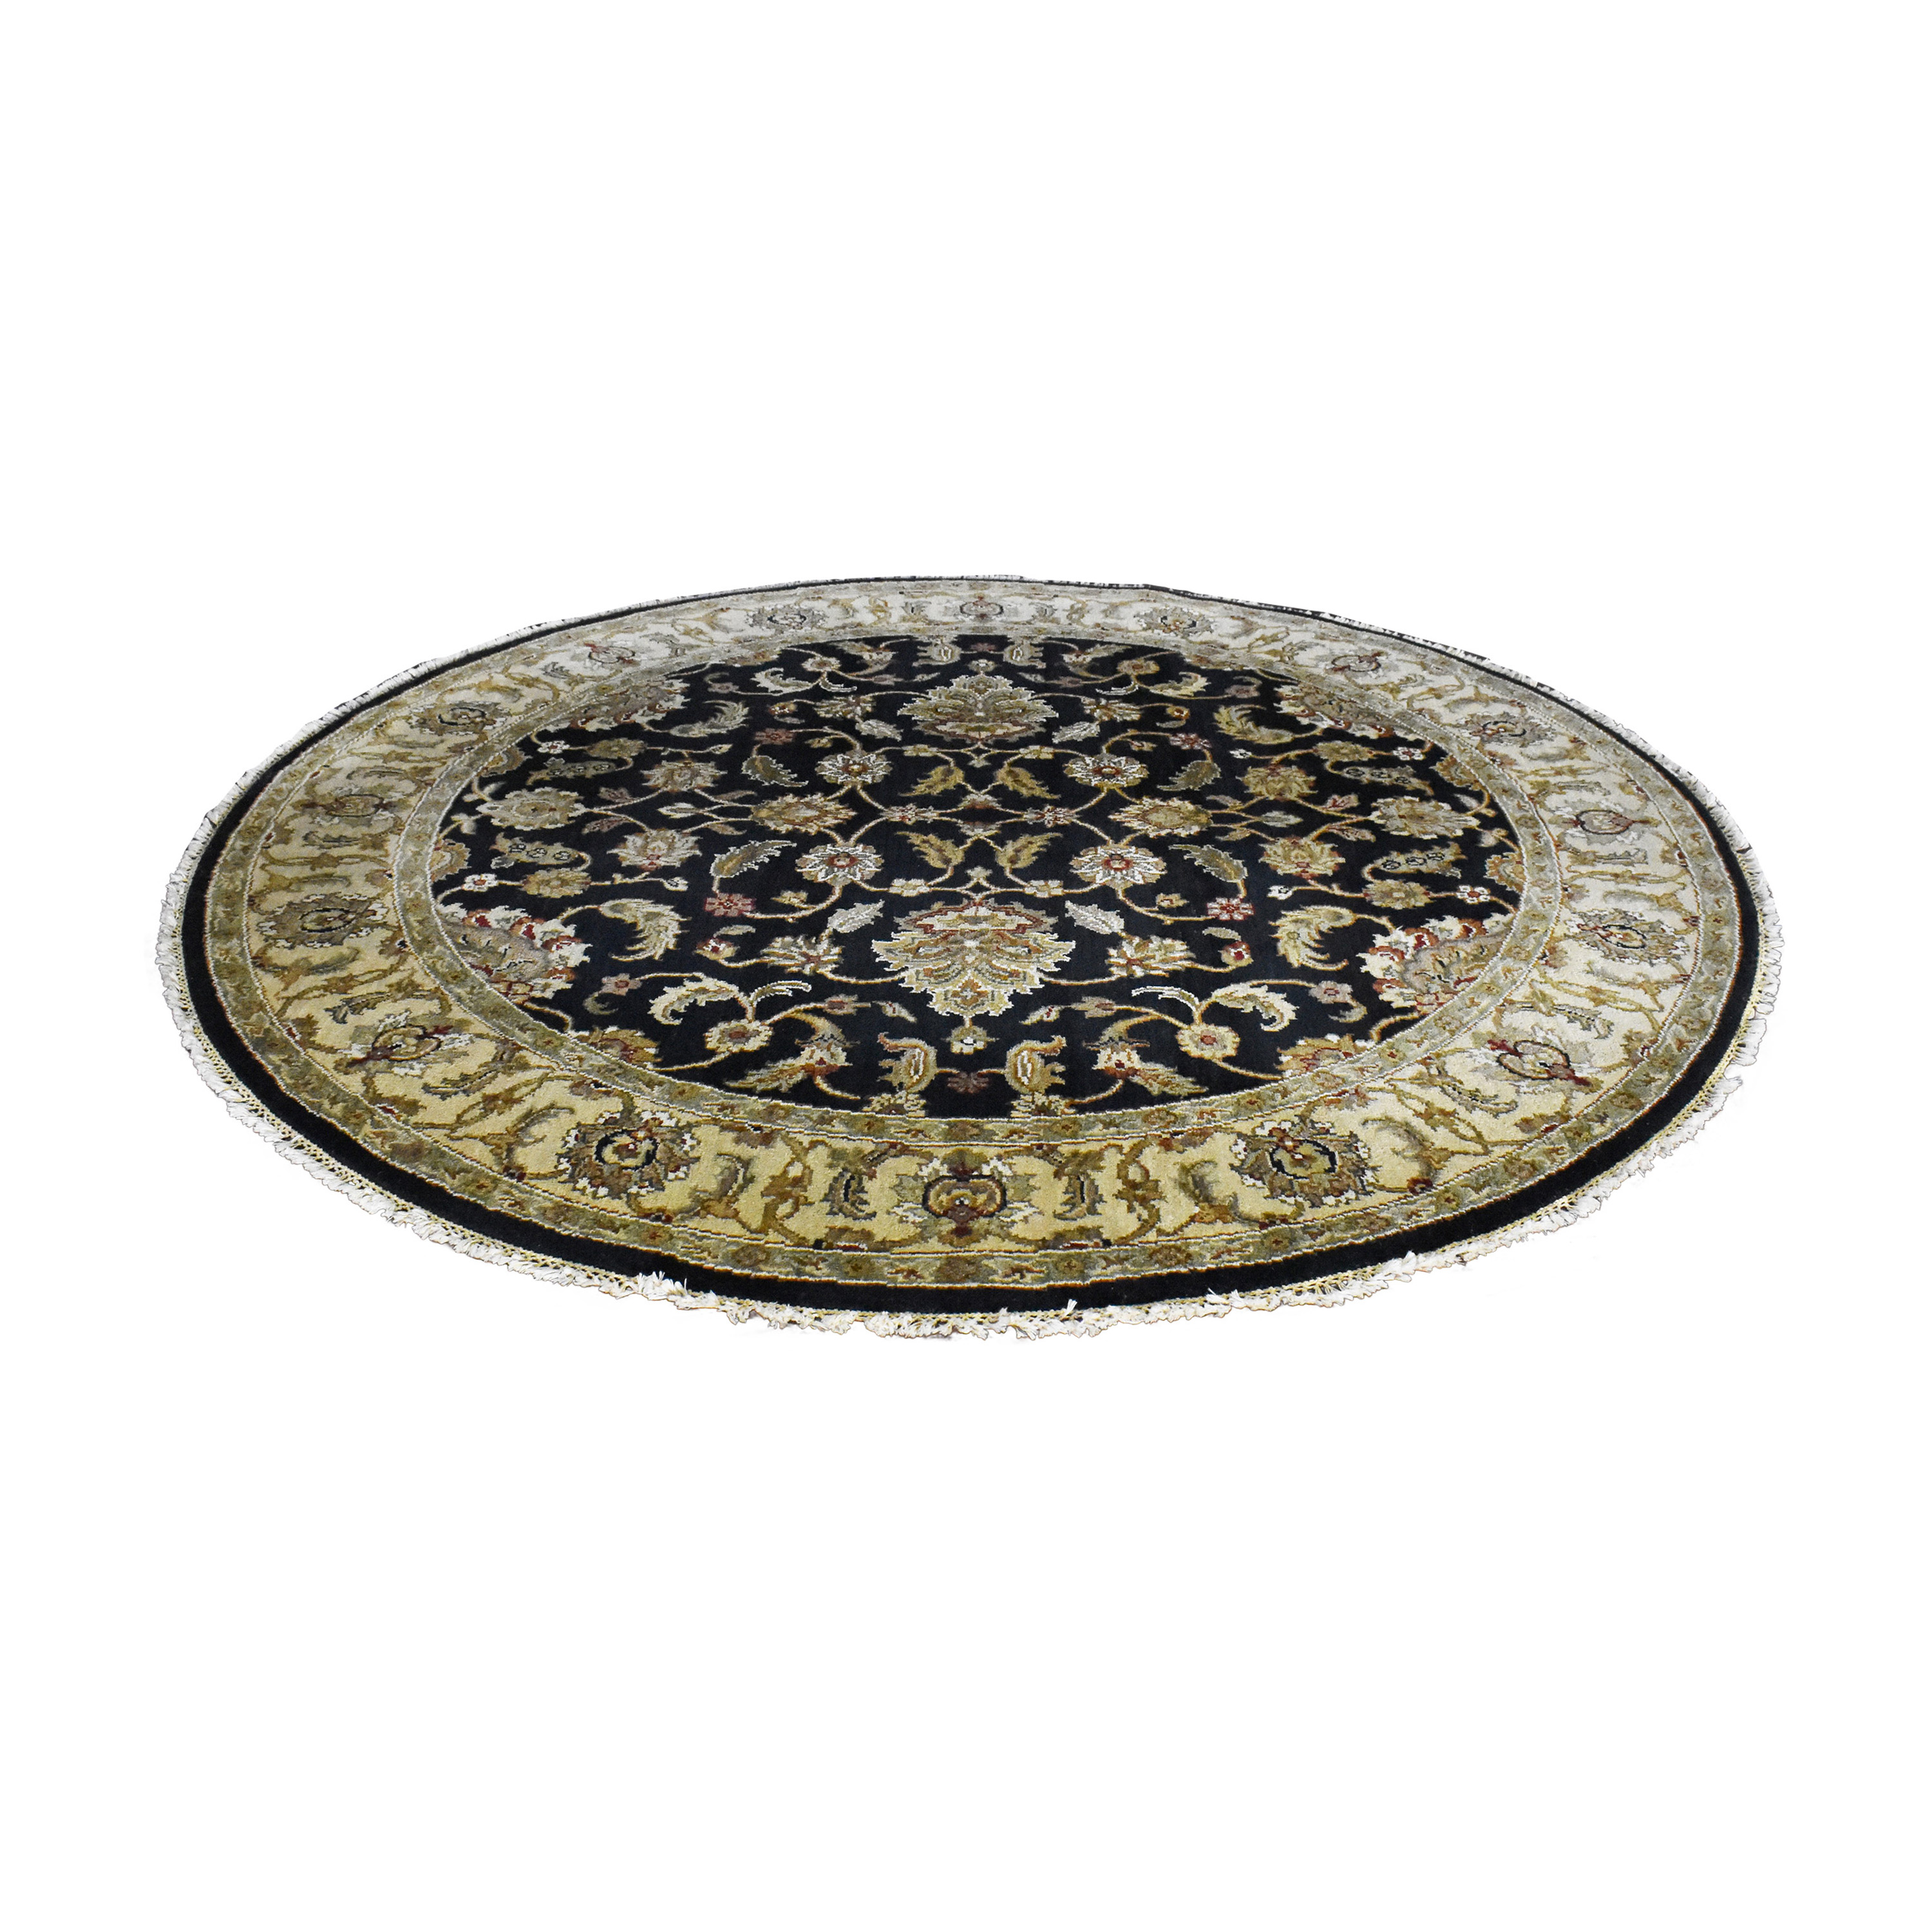 buy Round Patterned Area Rug  Decor